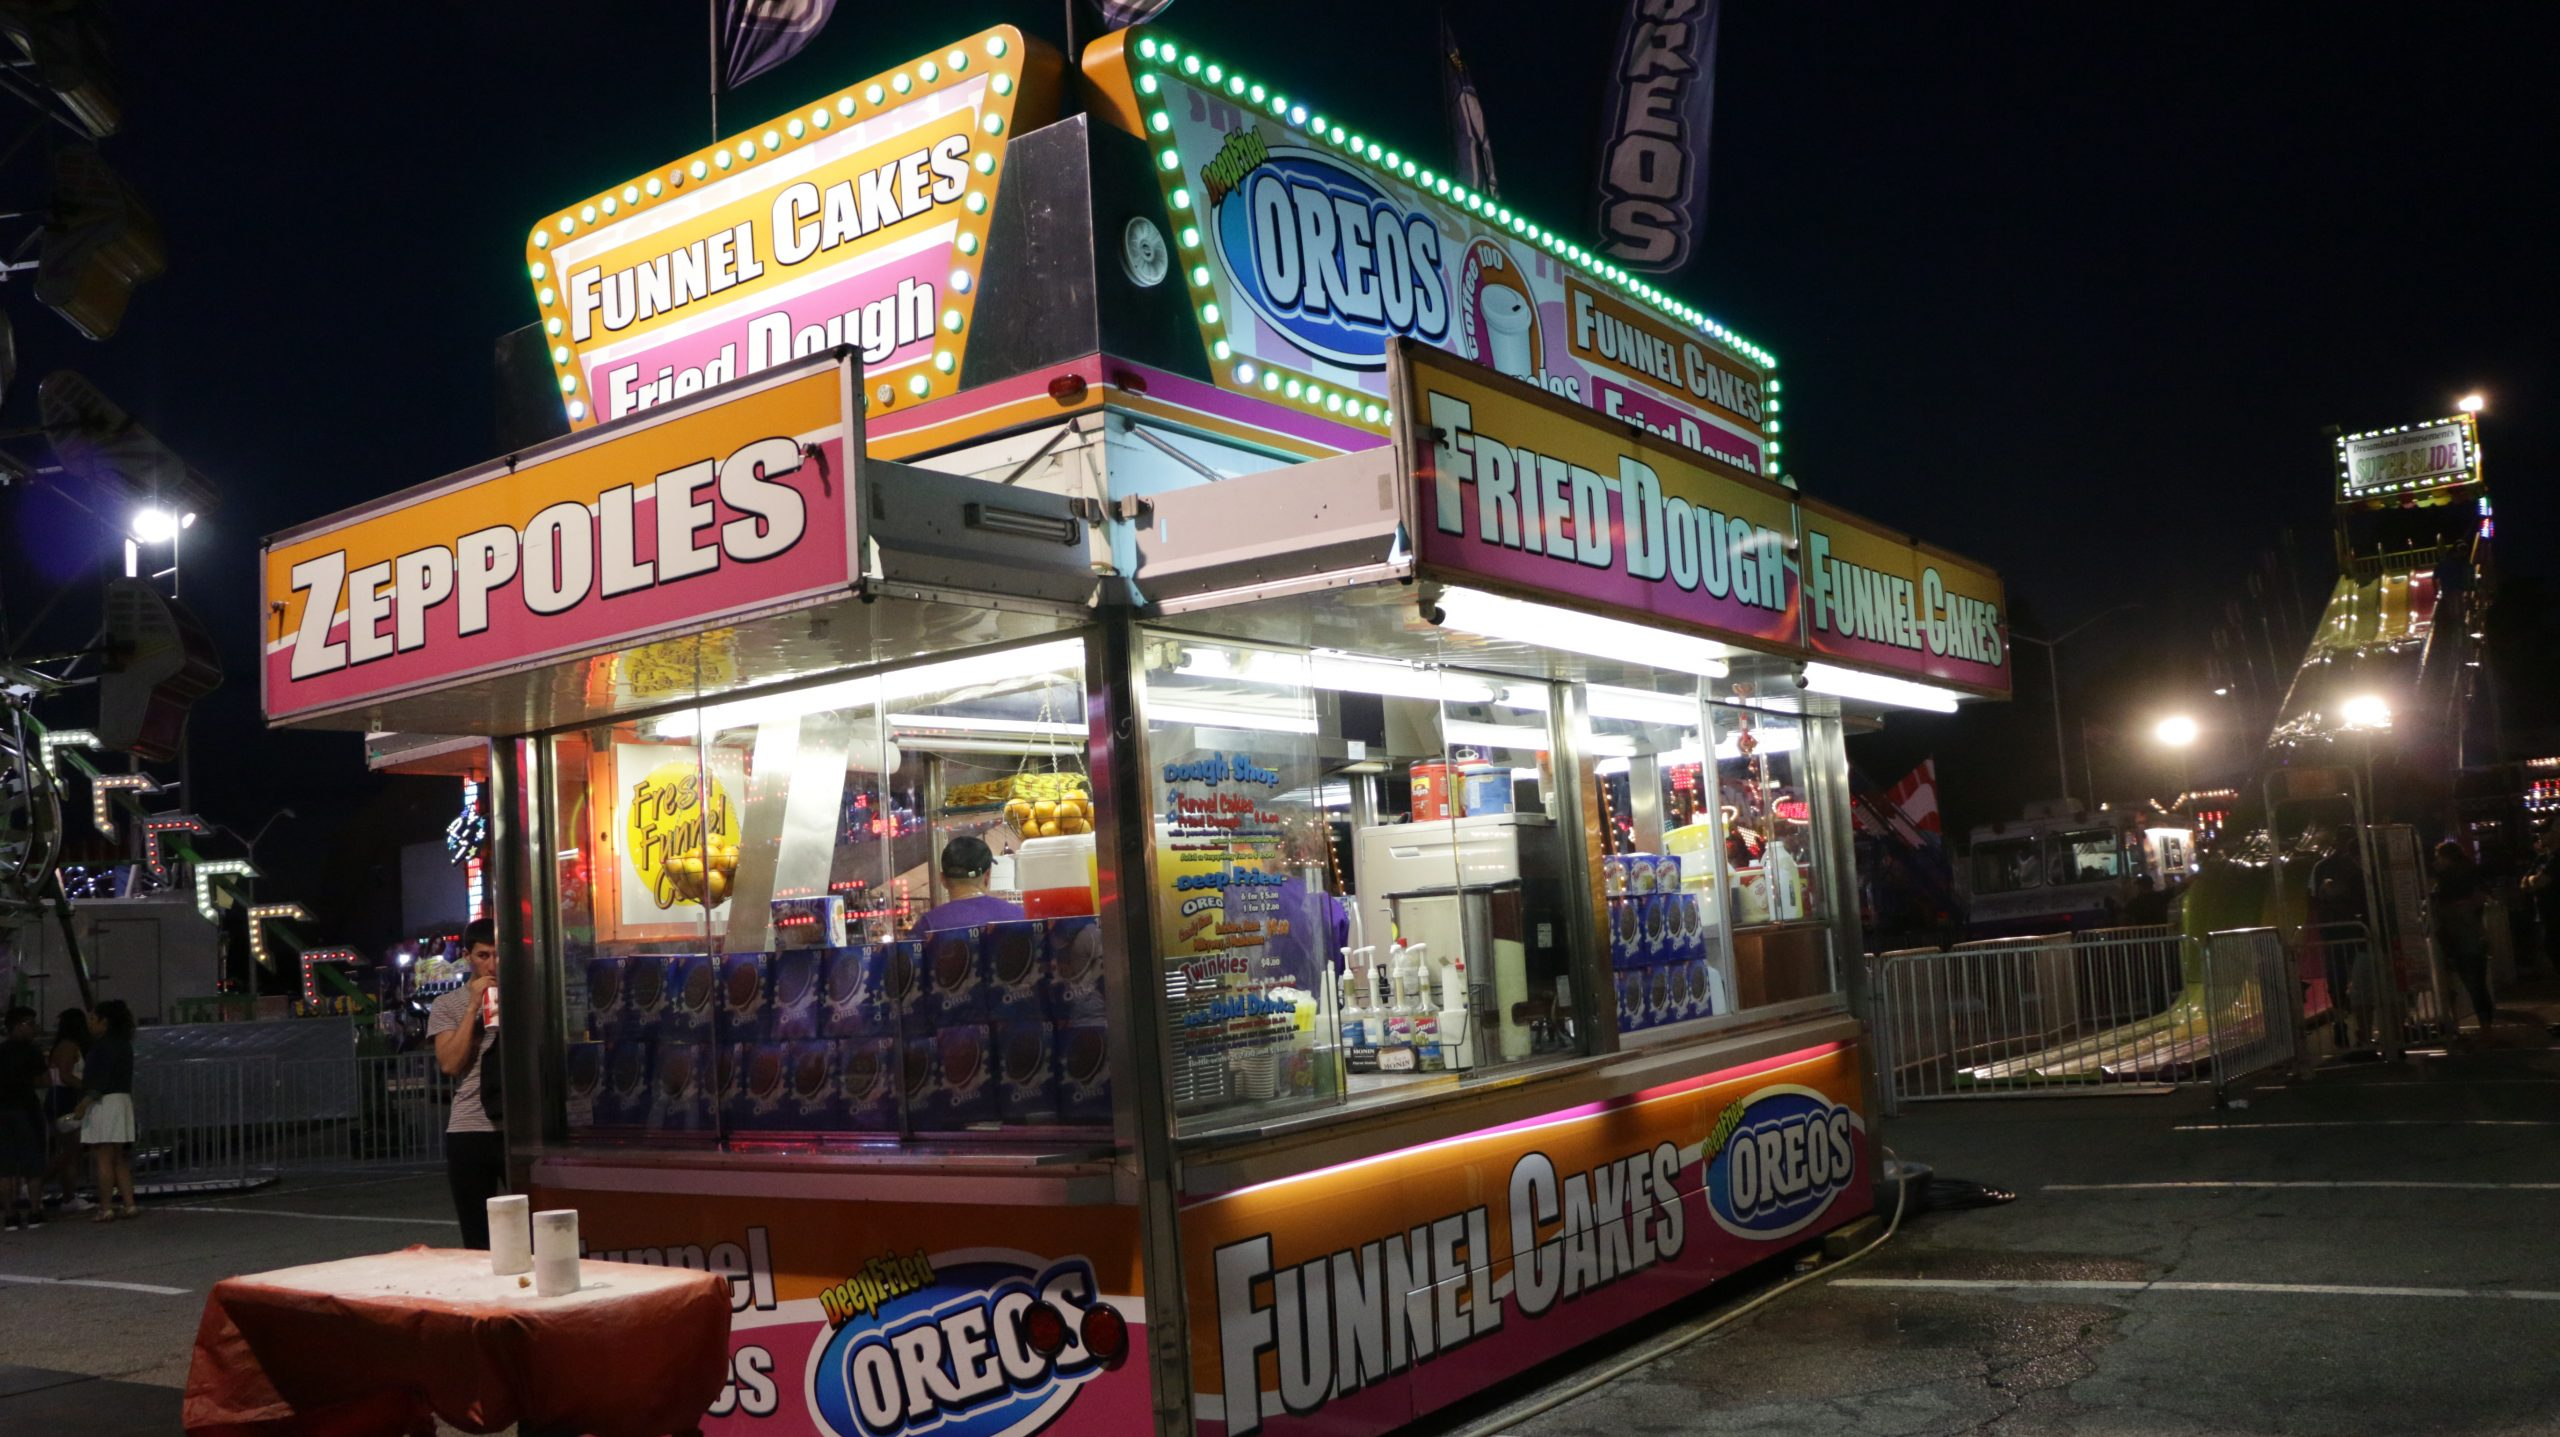 fried dough/funnel cakes